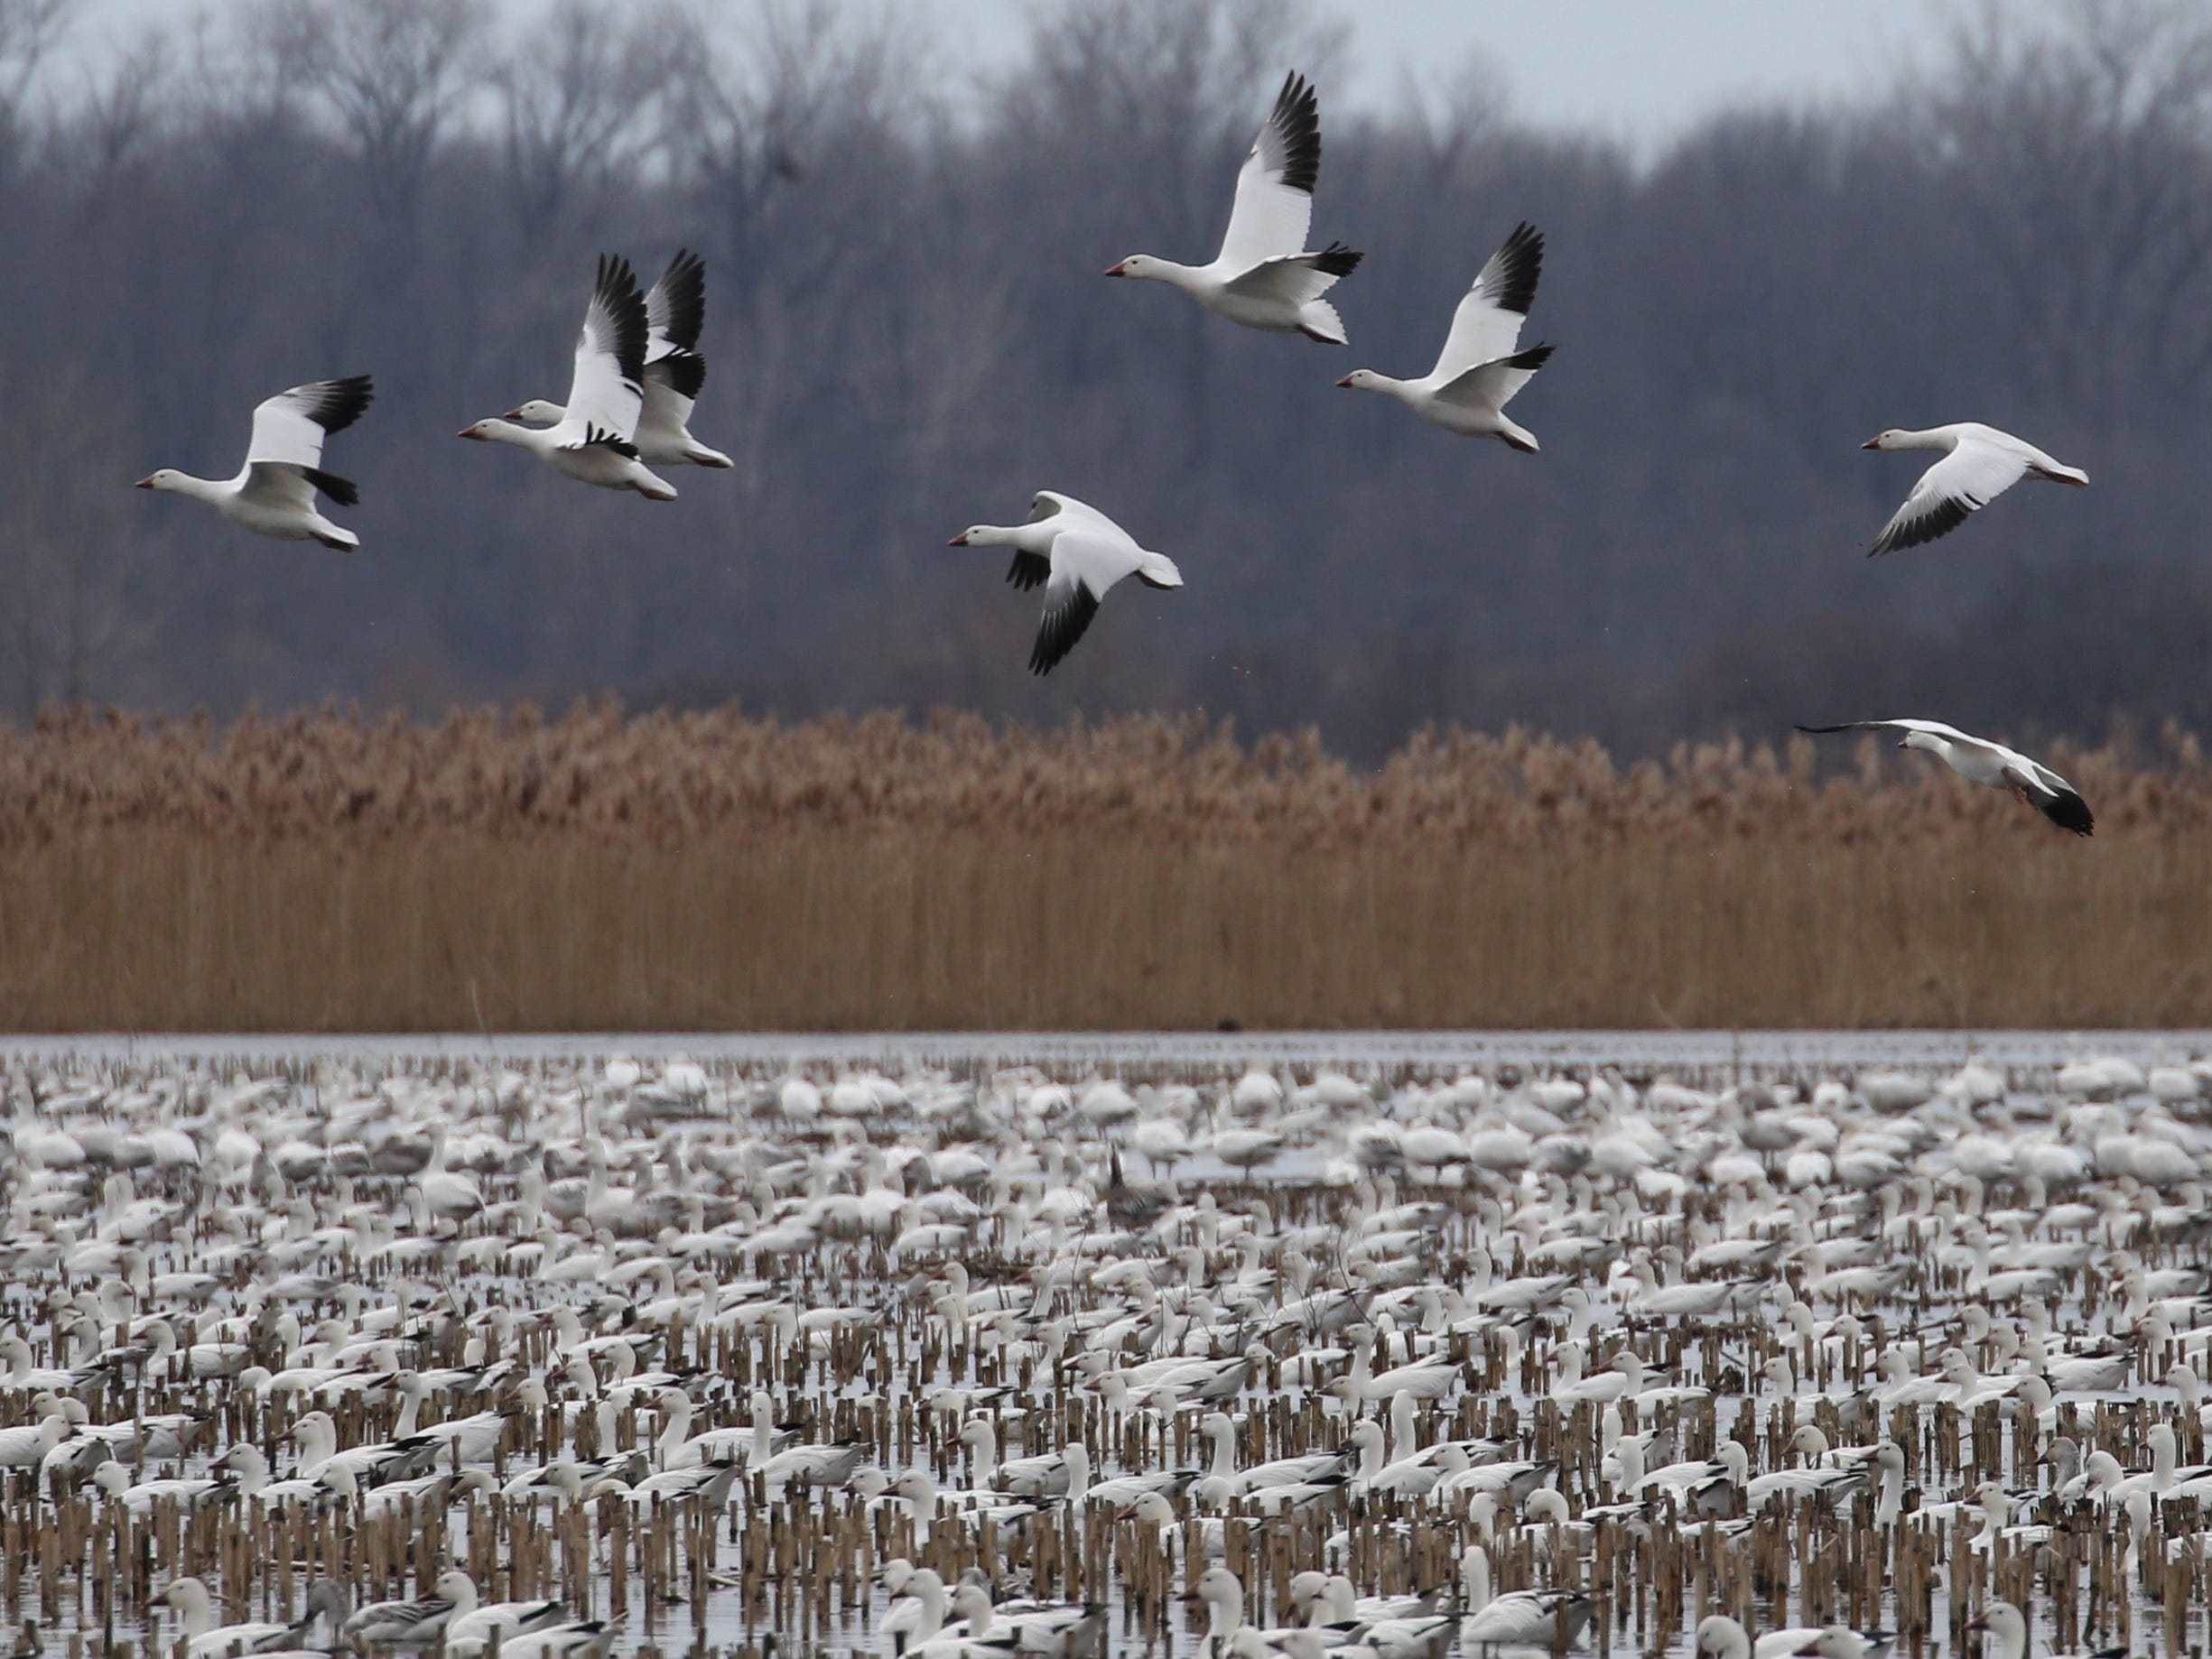 Snow Geese settle back down on a stretch of partially flooded farm land known as the 31 muck during the annual spring migration at the Montezuma Wetlands Complex along Route 31 outside of Savannah Thursday, March 21, 2019.